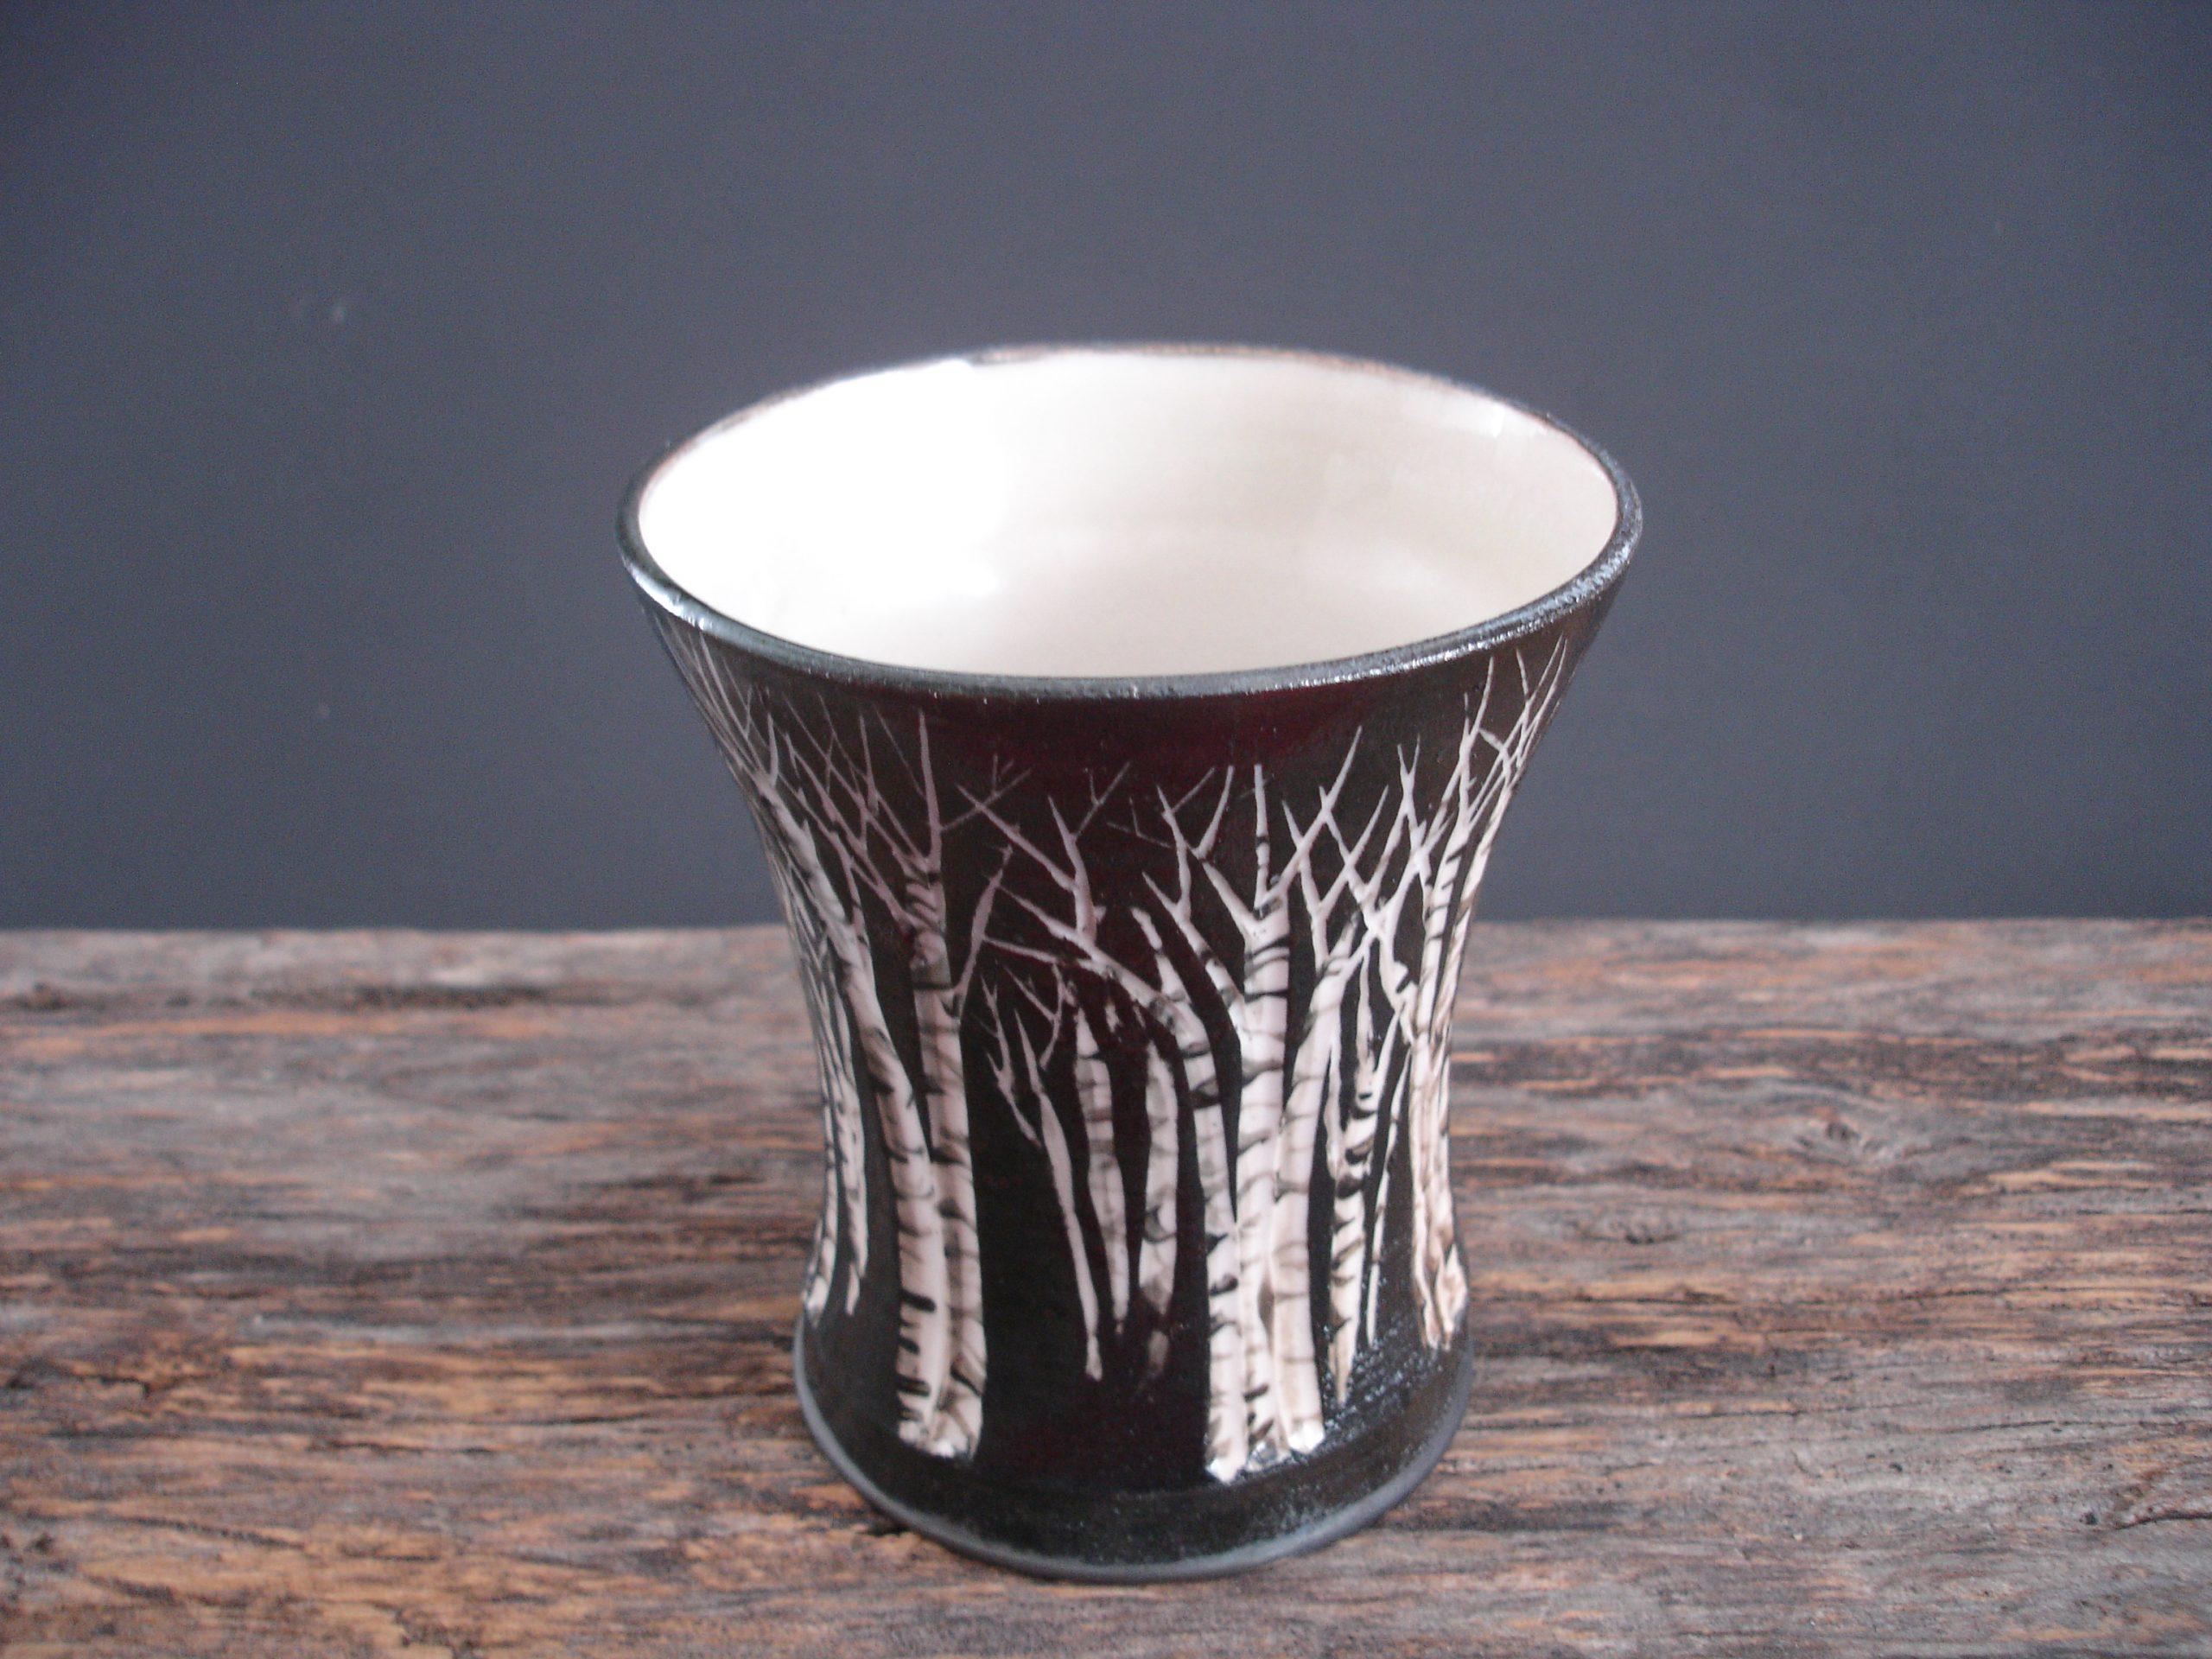 image of a carved pottery tumbler with birch trees